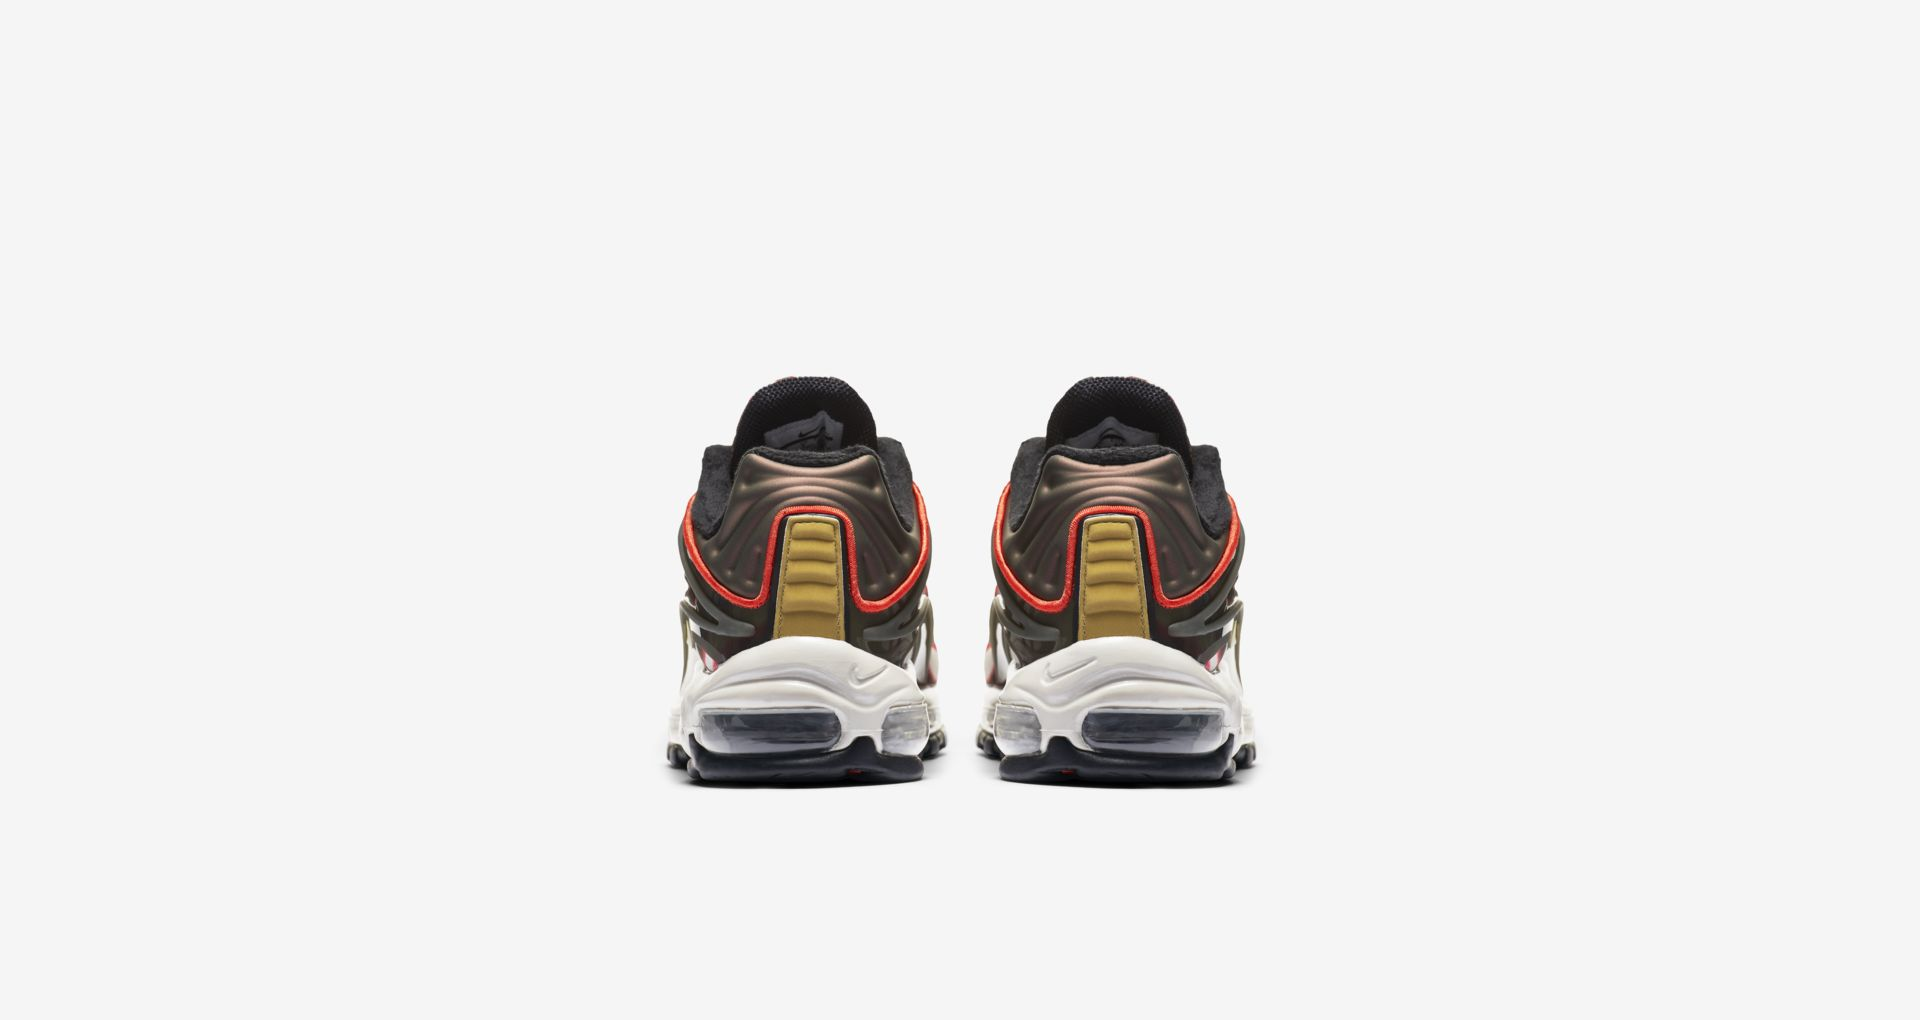 AJ7831 300 Nike Air Max Deluxe Sequoia 5